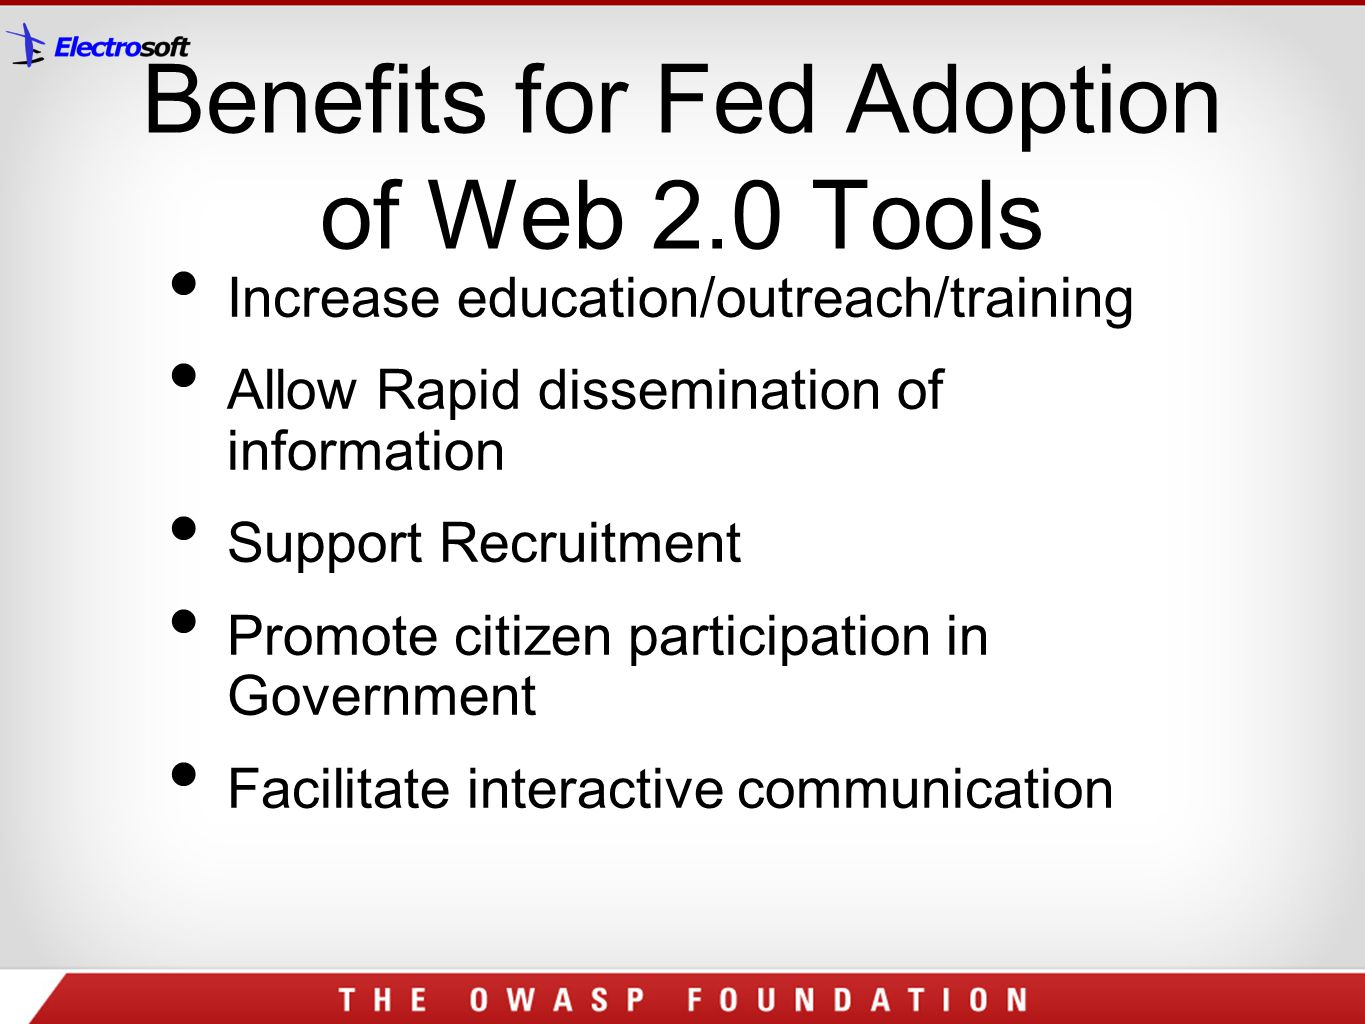 Benefits for Fed Adoption of Web 2.0 Tools